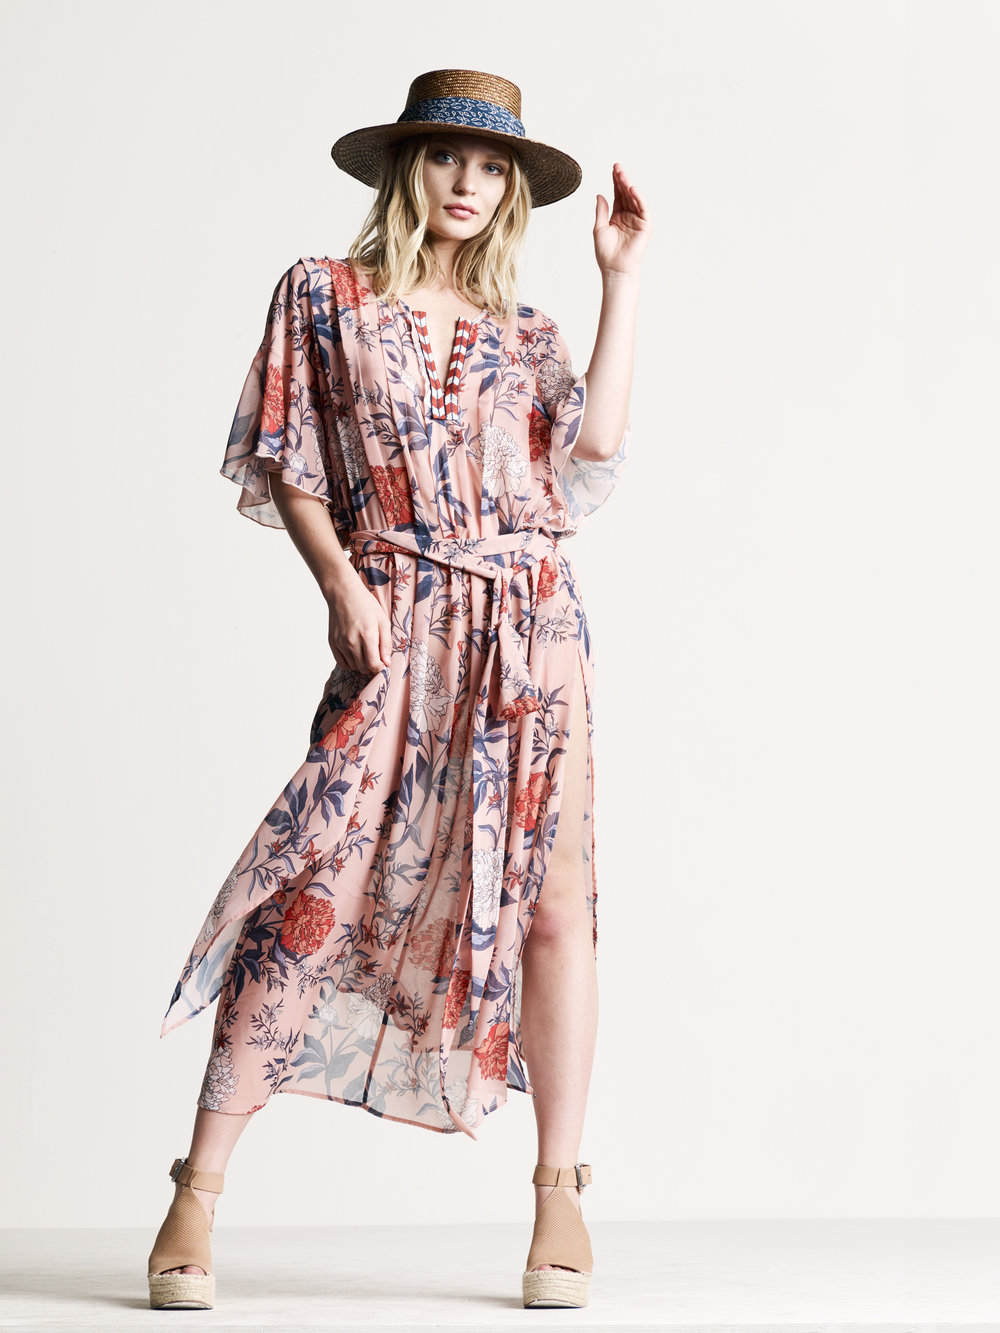 CORAL FLORAL PRINT - See more styles